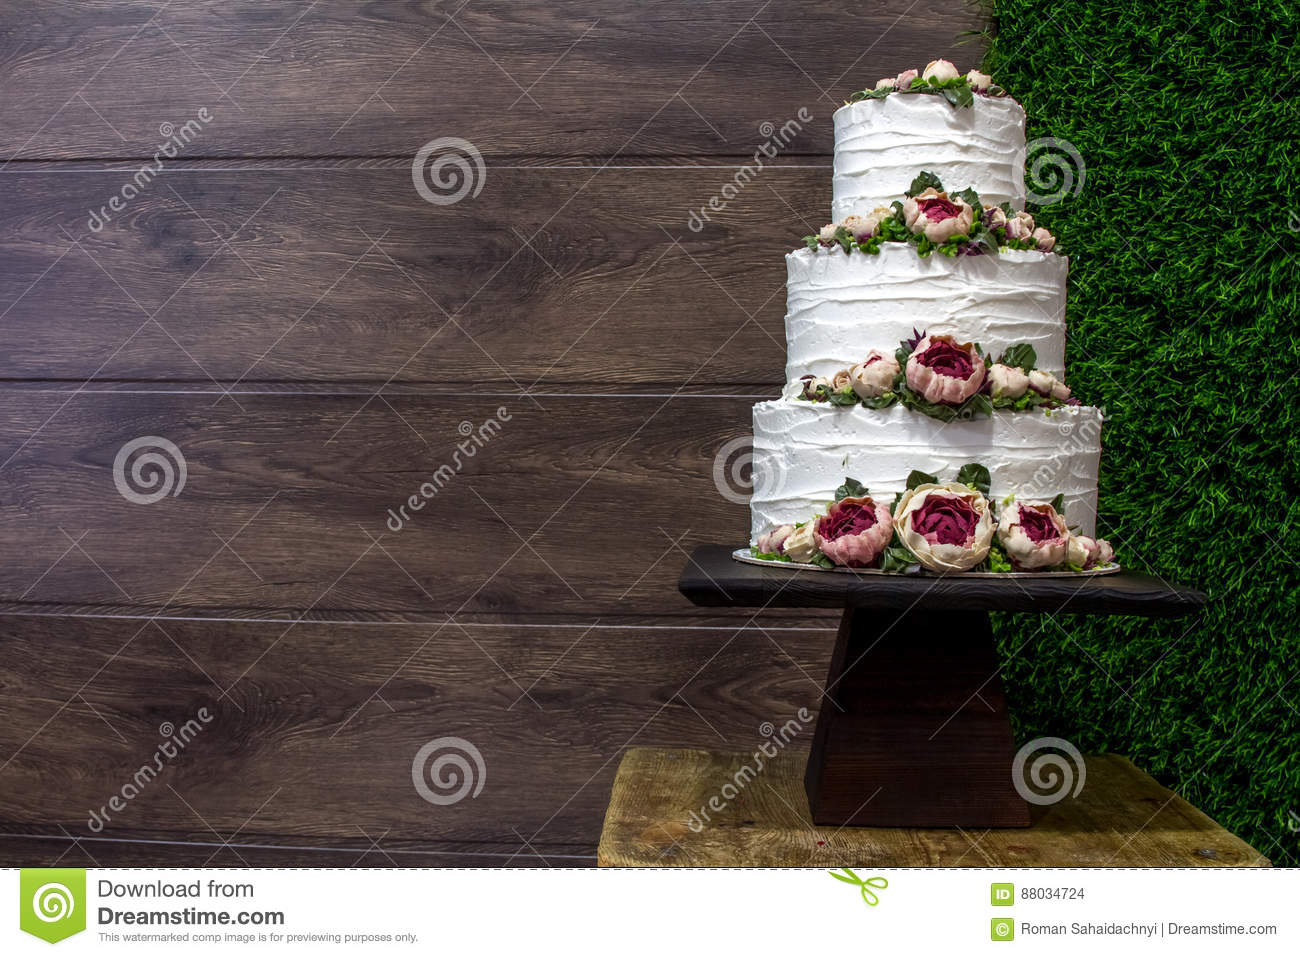 Cakes To Order Stock Photo Image Of Healthy Celebration 88034724